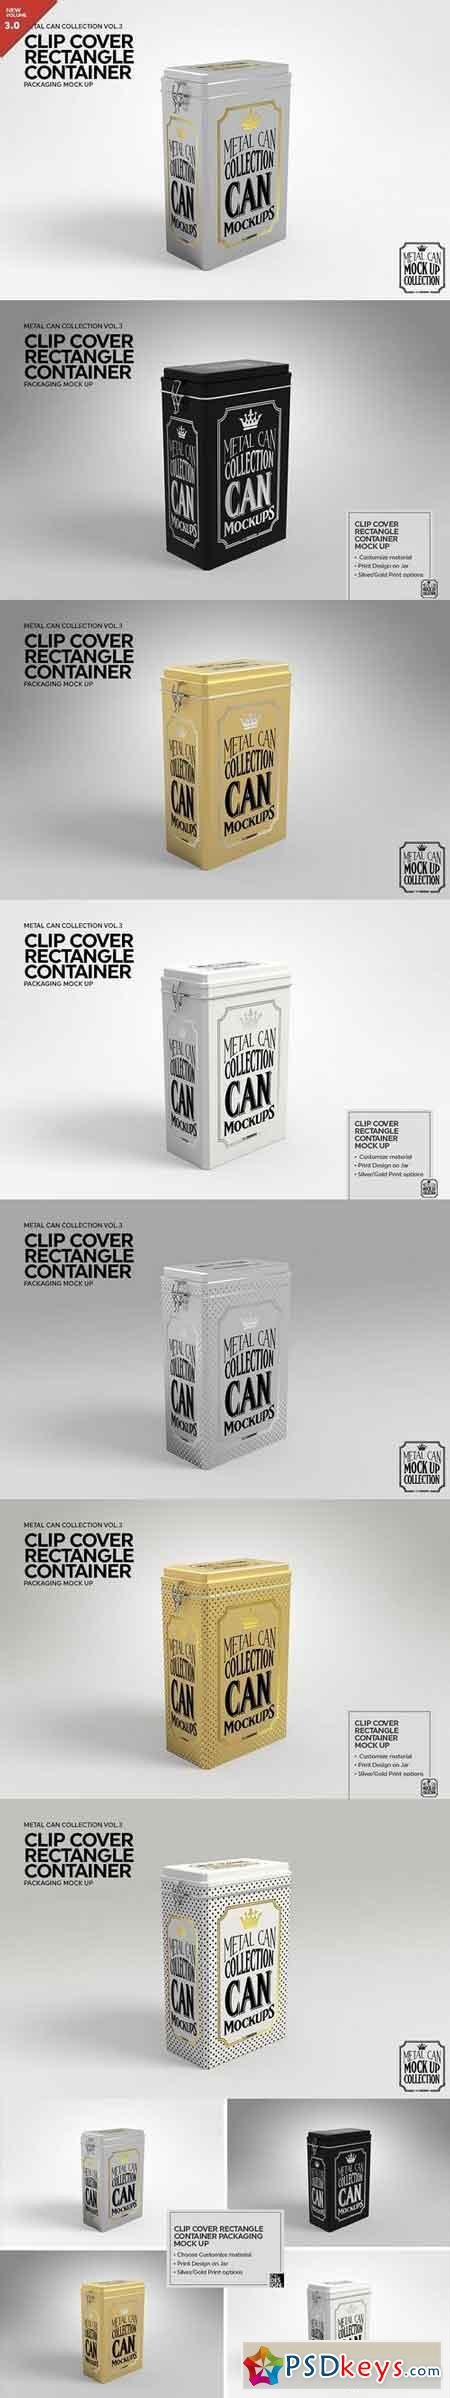 ClipCover Rectangle Container MockUp 1929519